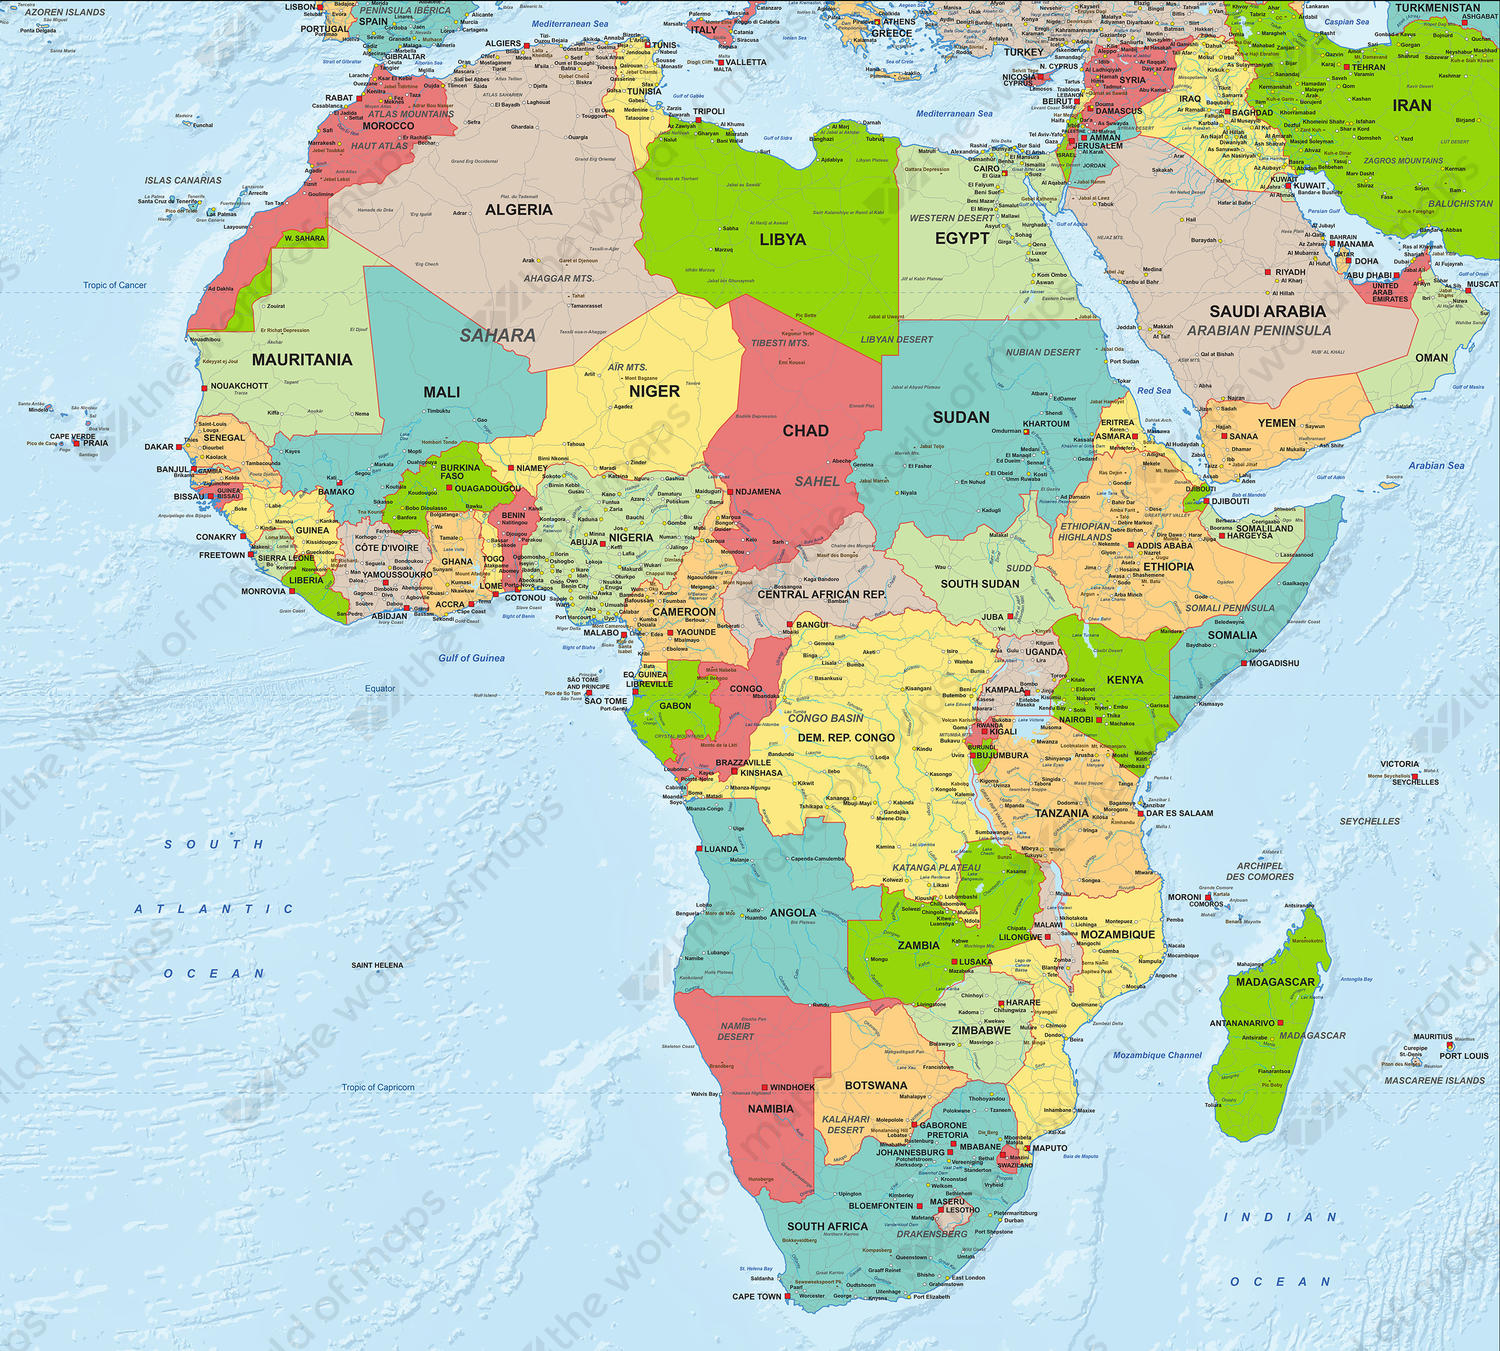 Digital Political Map Africa 1282 | The World of Maps.com